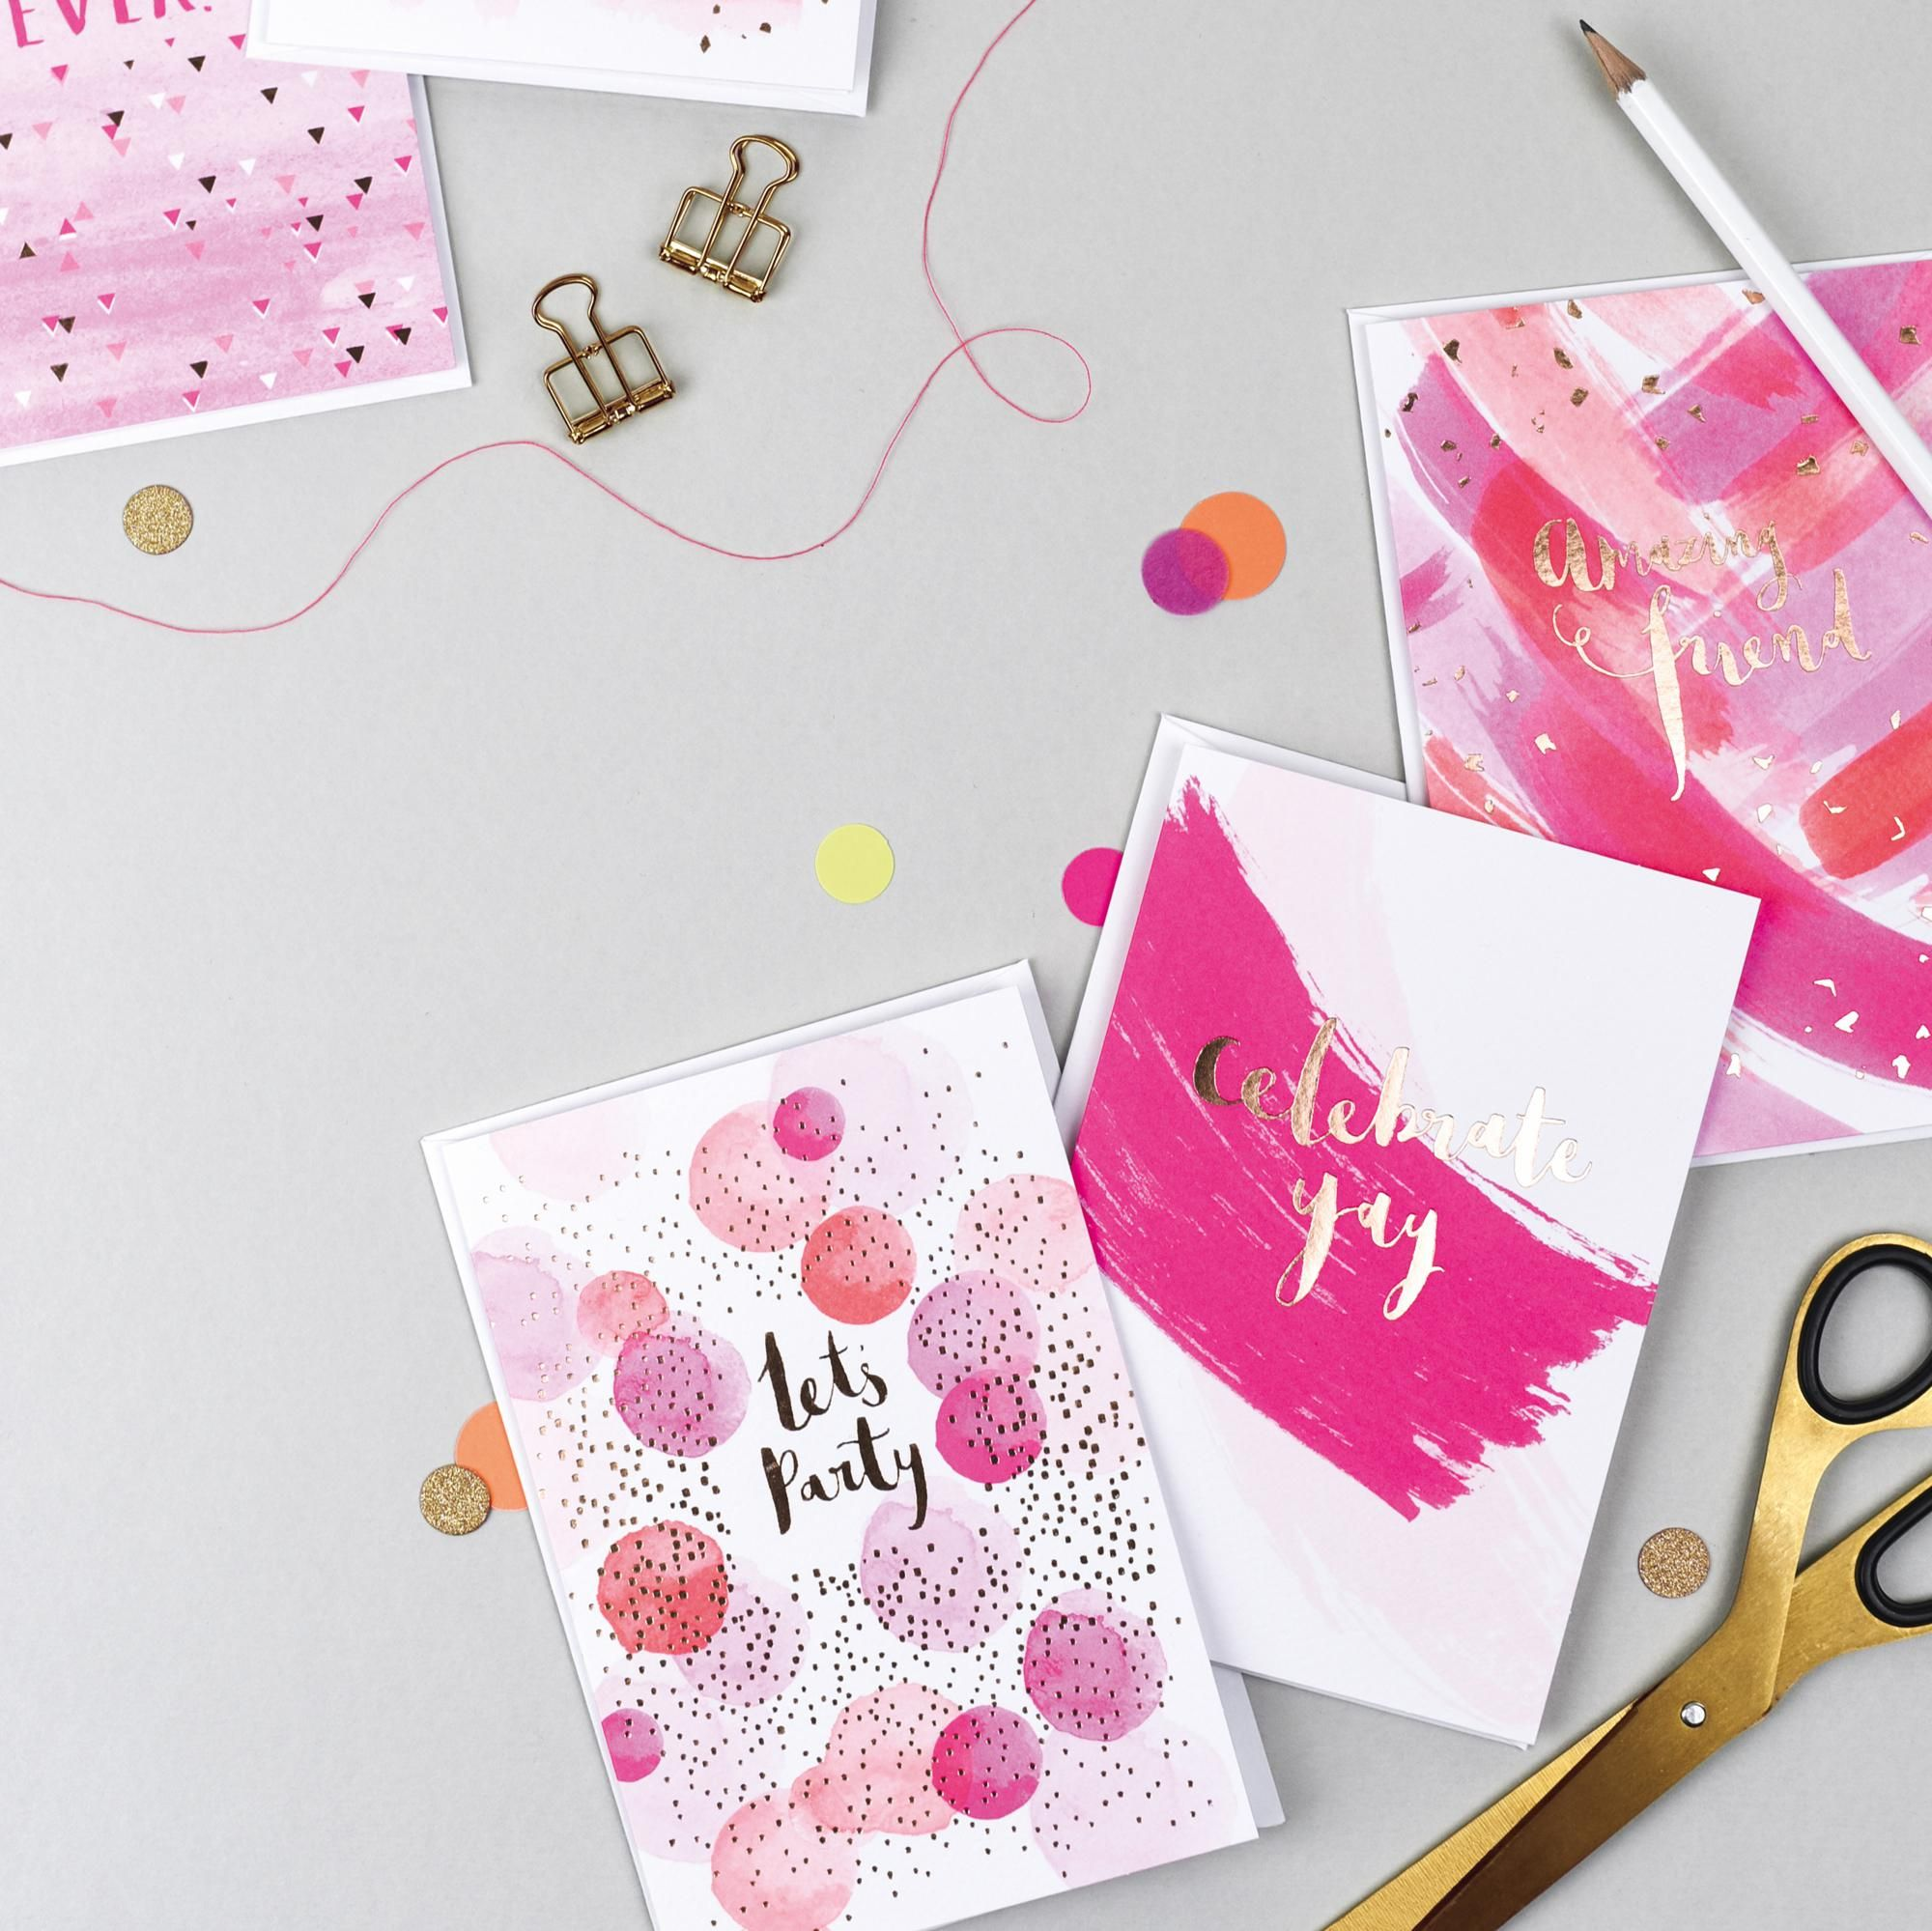 Hello Neon Cards By Anna Price For Hotchpotch London Card Making